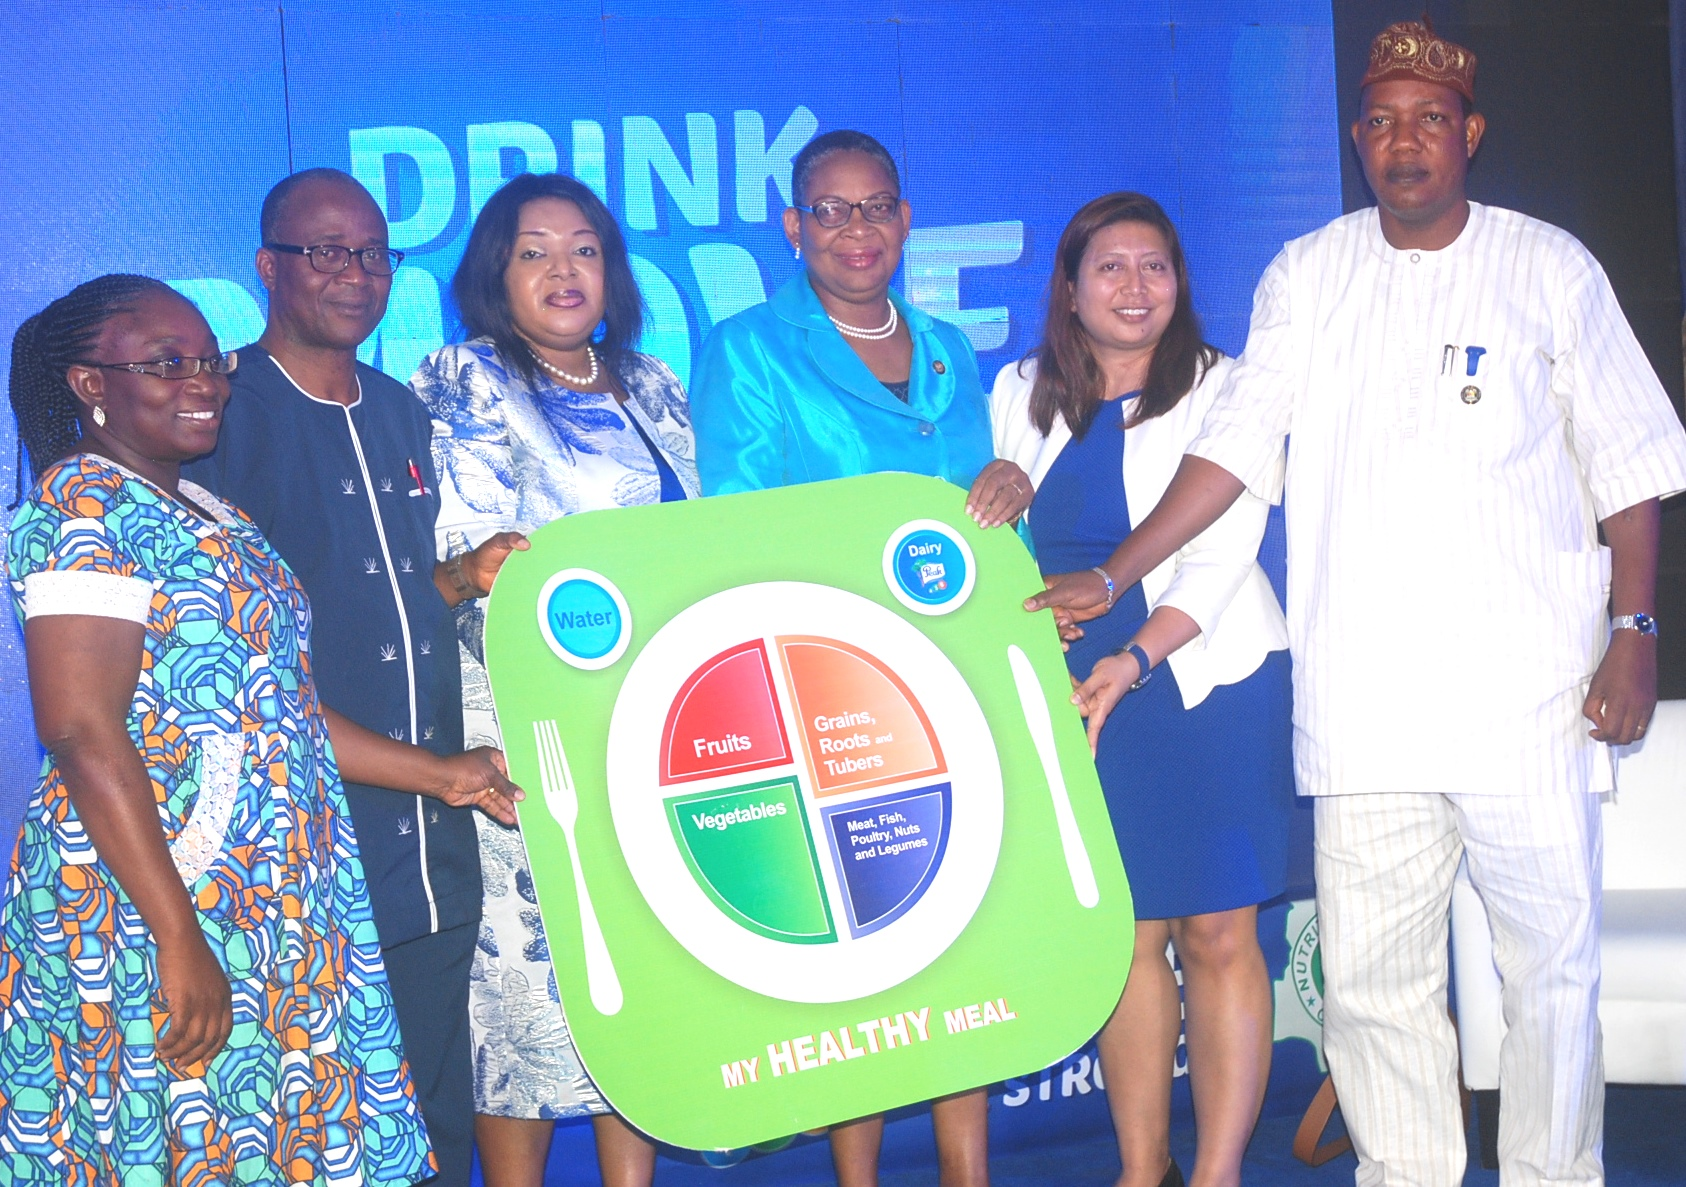 L-R; Dr. Folake Samuel, Head Scientific Committee, Nutrition Society of Nigeria; Dr. Batholomew Brai, National President, Nutrition Society of Nigeria; Mrs. Ore Famurewa, Corporate Affairs Director, FrieslandCampina WAMCO Nigeria Plc.; Mrs. Adebunmi Adekanye, Permanent Secretary, Ministry of Education, representing Dr. Oluranti Adebule, Deputy Governor of Lagos State; Zatur Hassim, Marketing Manager IFT, FrieslandCampina WAMCO Nigeria Plc. and Mr. Ganiu Okanlawon, Special Adviser to the Governor on Food Security during the kick-off ceremony for Peak 456 Drink Move Be Strong Pre-School Programme held in Lagos.